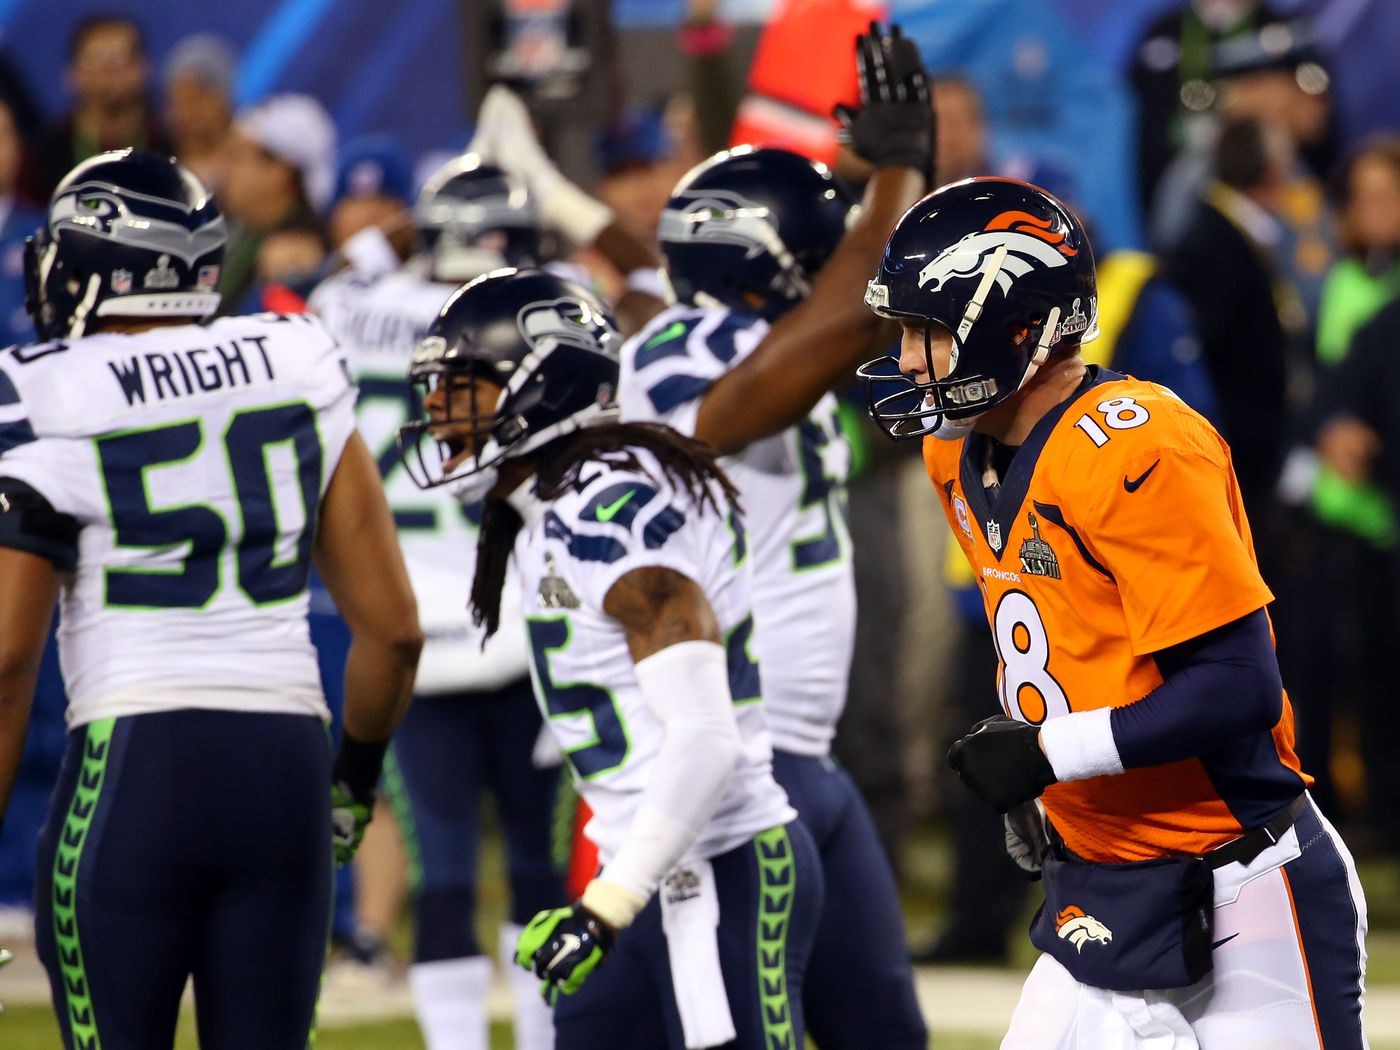 f5b0b72e Super Bowl 2014 score: Seahawks get safety to start game after ...